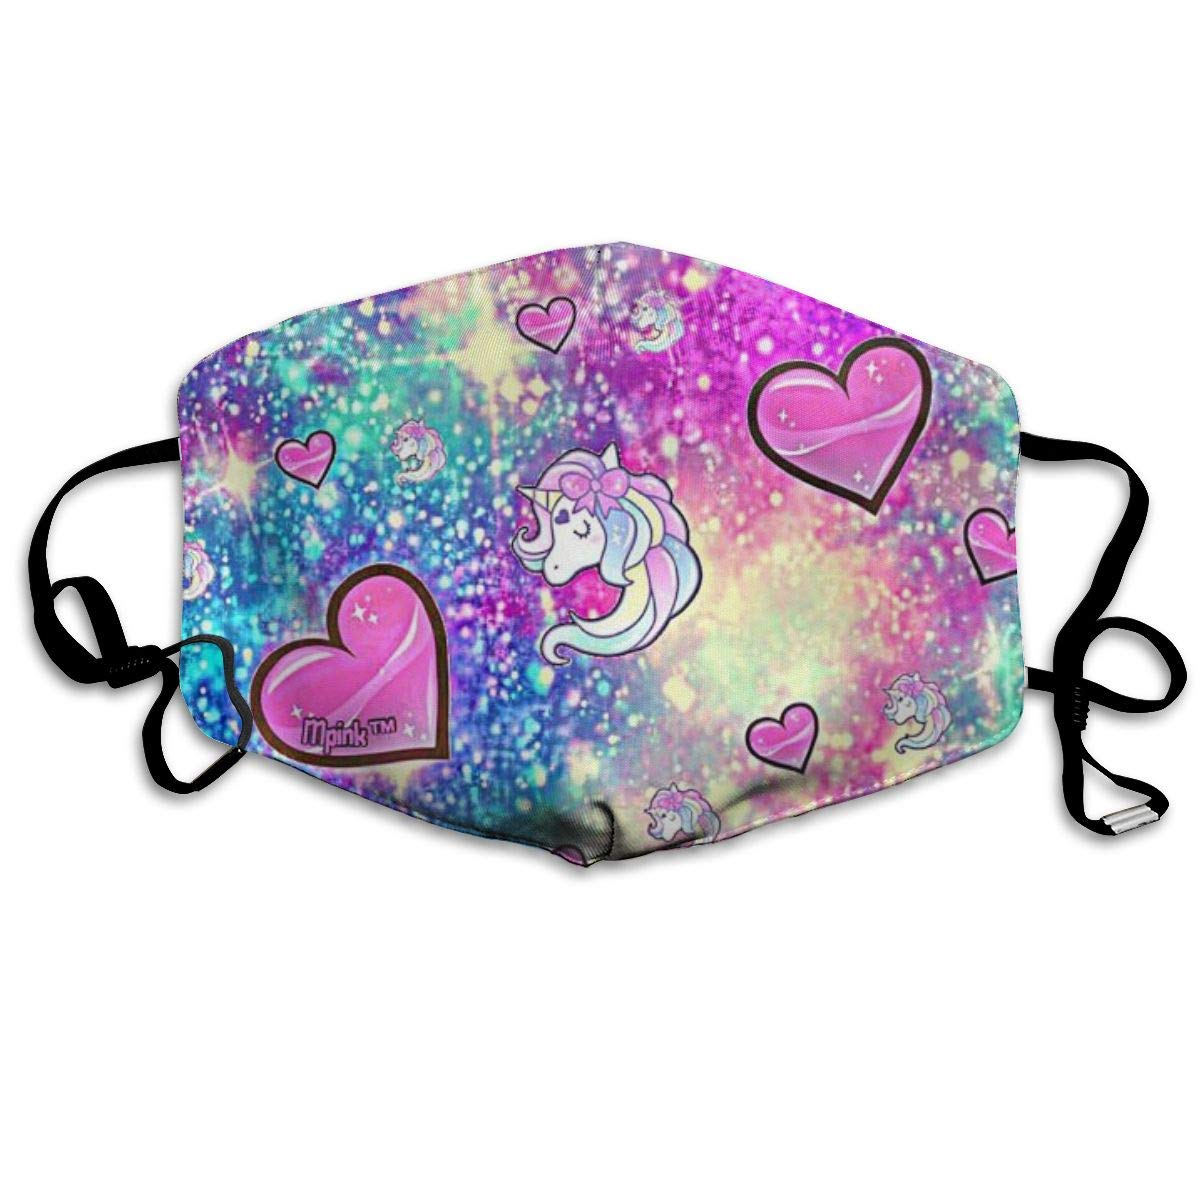 Colorful Unicorn Unisex Mask Indoor Outdoor Cycling Camping Travel Windproof Sun Anti Dust Mask Mouth With Adjustable Ear Loops